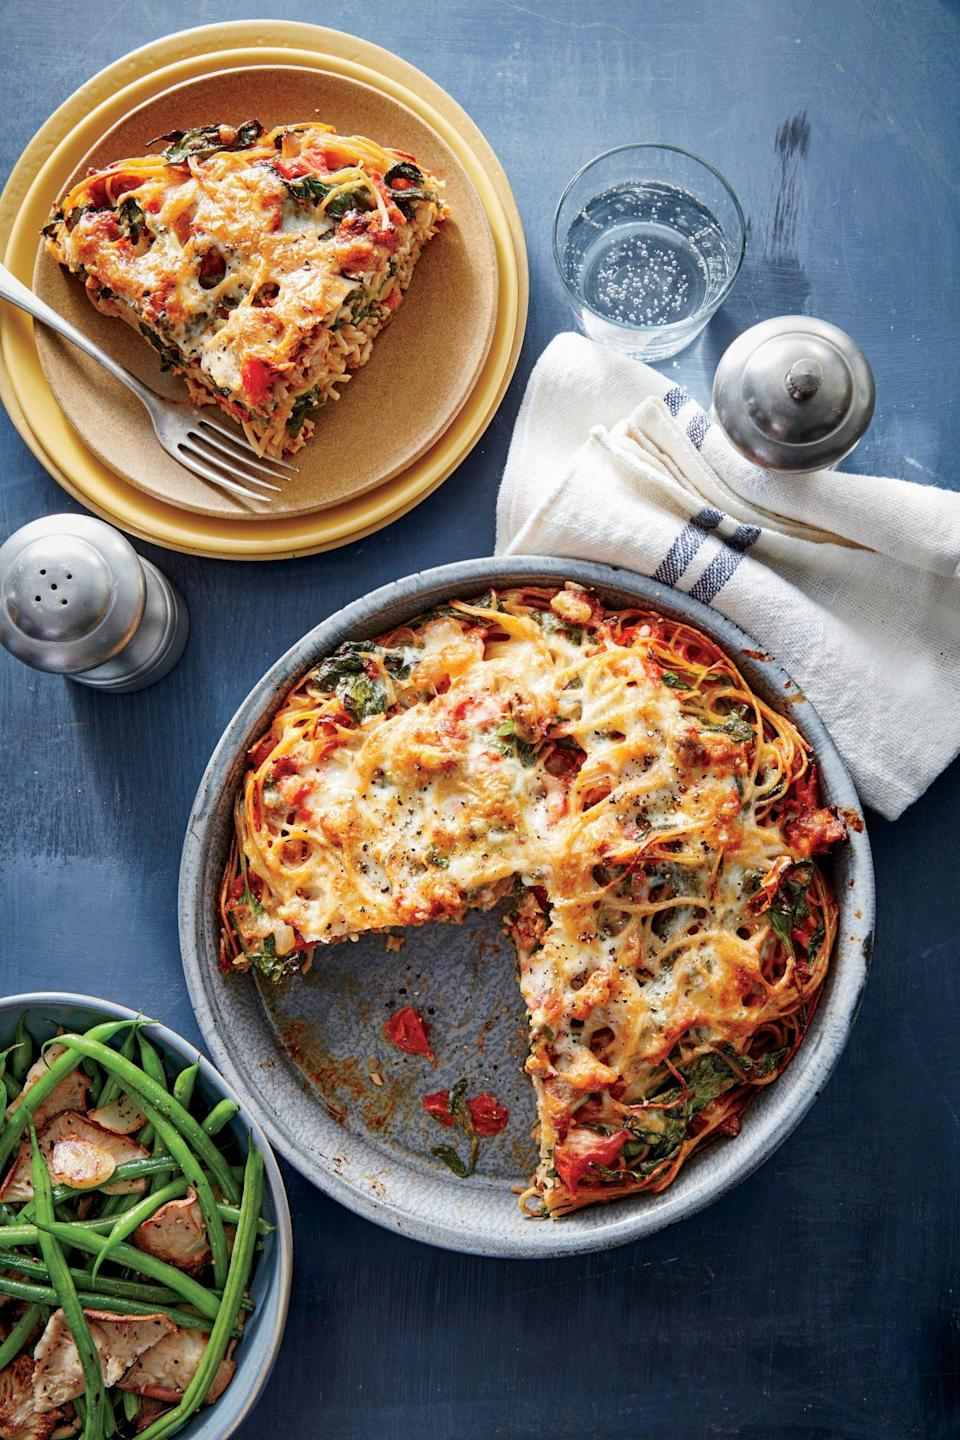 """<p>We love <a href=""""https://www.myrecipes.com/t/vegetables/mushrooms/shiitake-mushrooms"""" rel=""""nofollow noopener"""" target=""""_blank"""" data-ylk=""""slk:meaty shiitakes"""" class=""""link rapid-noclick-resp"""">meaty shiitakes</a> here, but any mushroom will work. Crisping the garlic adds great texture to the finished dish.</p>"""